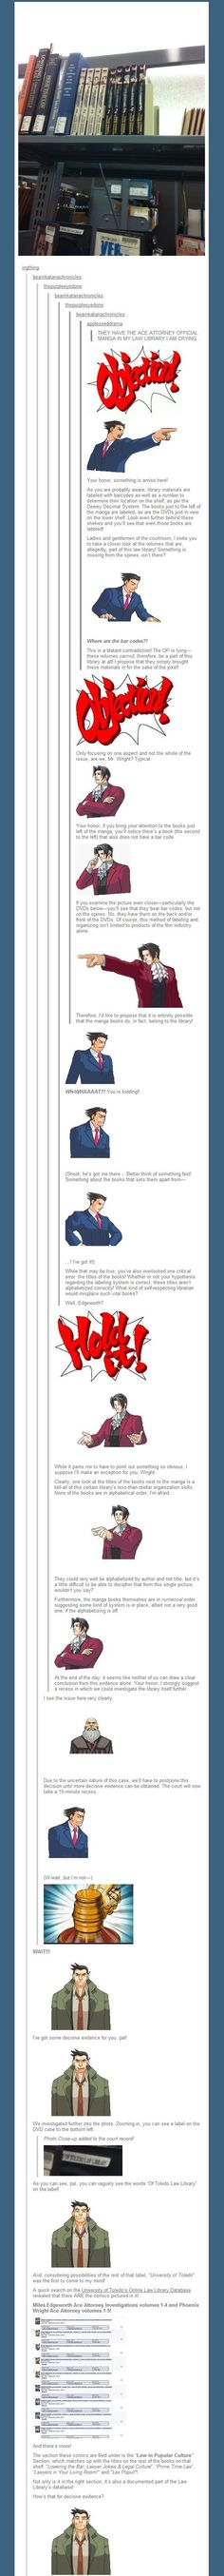 One Of The Greatest Tumblr Posts I've Ever Seen - Ace Attorney